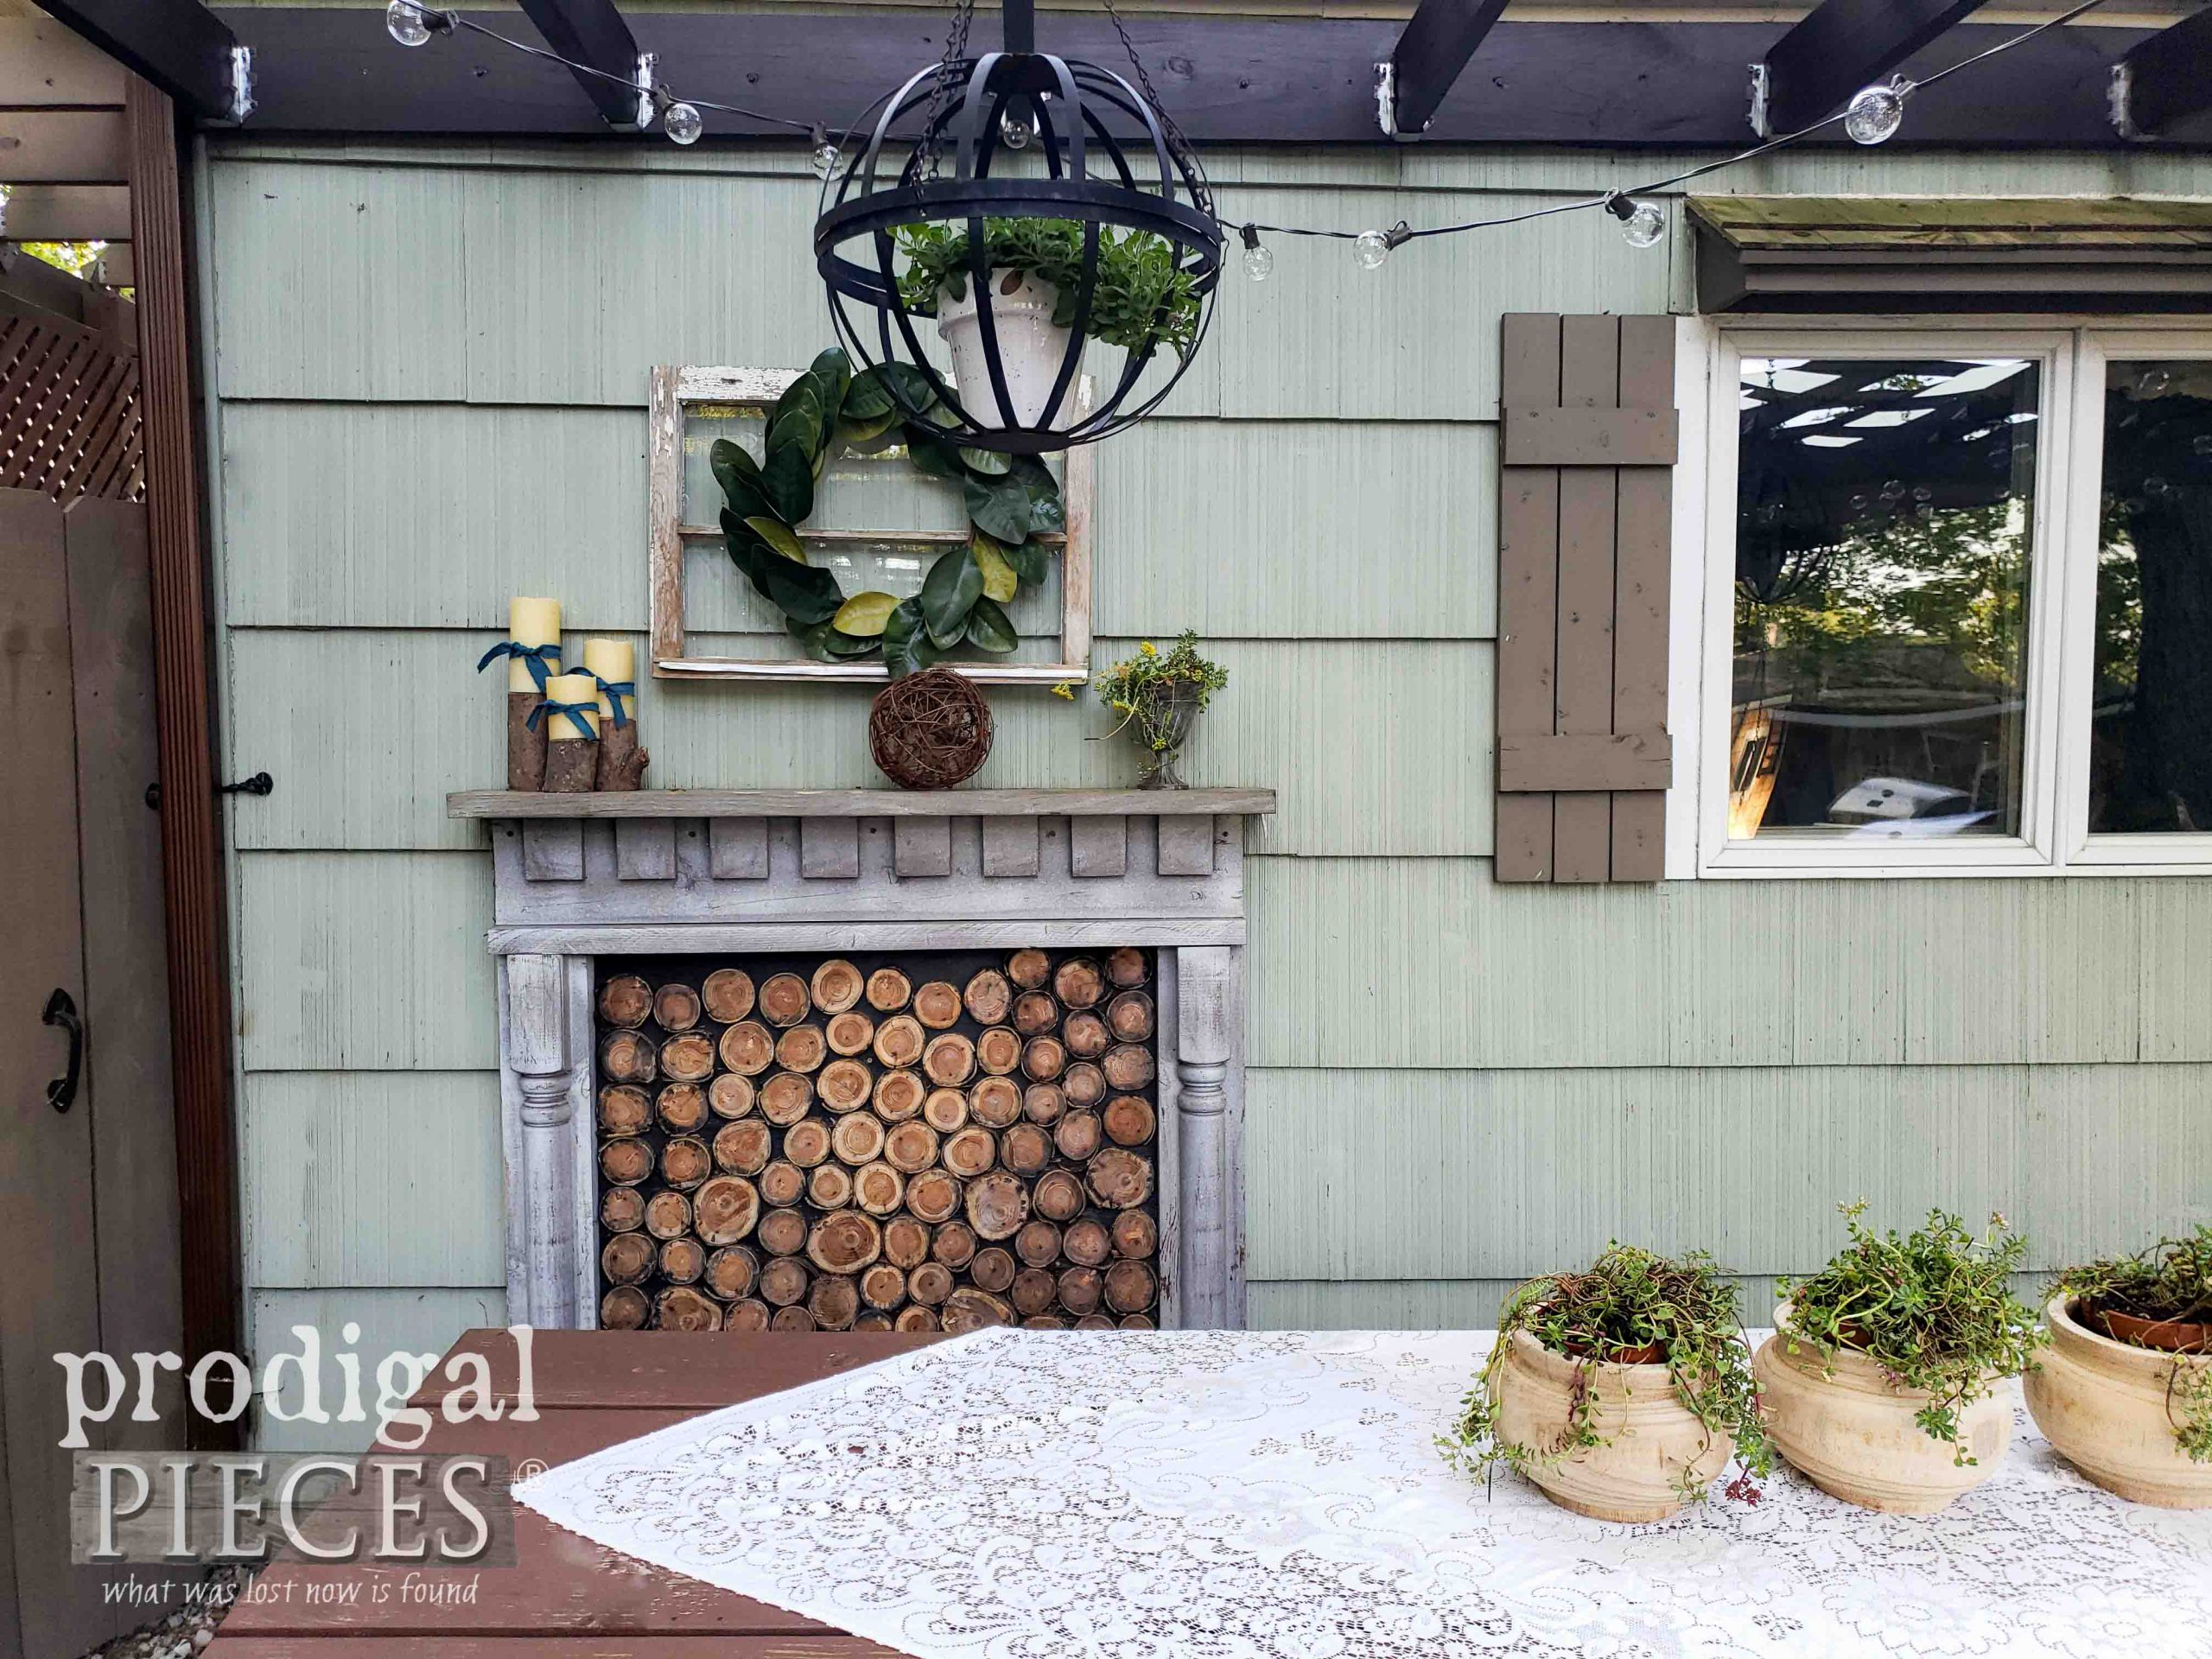 Rustic Farmhouse Patio with Faux Fireplace on Patio by Prodigal Pieces | prodigalpieces.com #prodigalpieces #patio #dining #home #homedecor #farmhouse